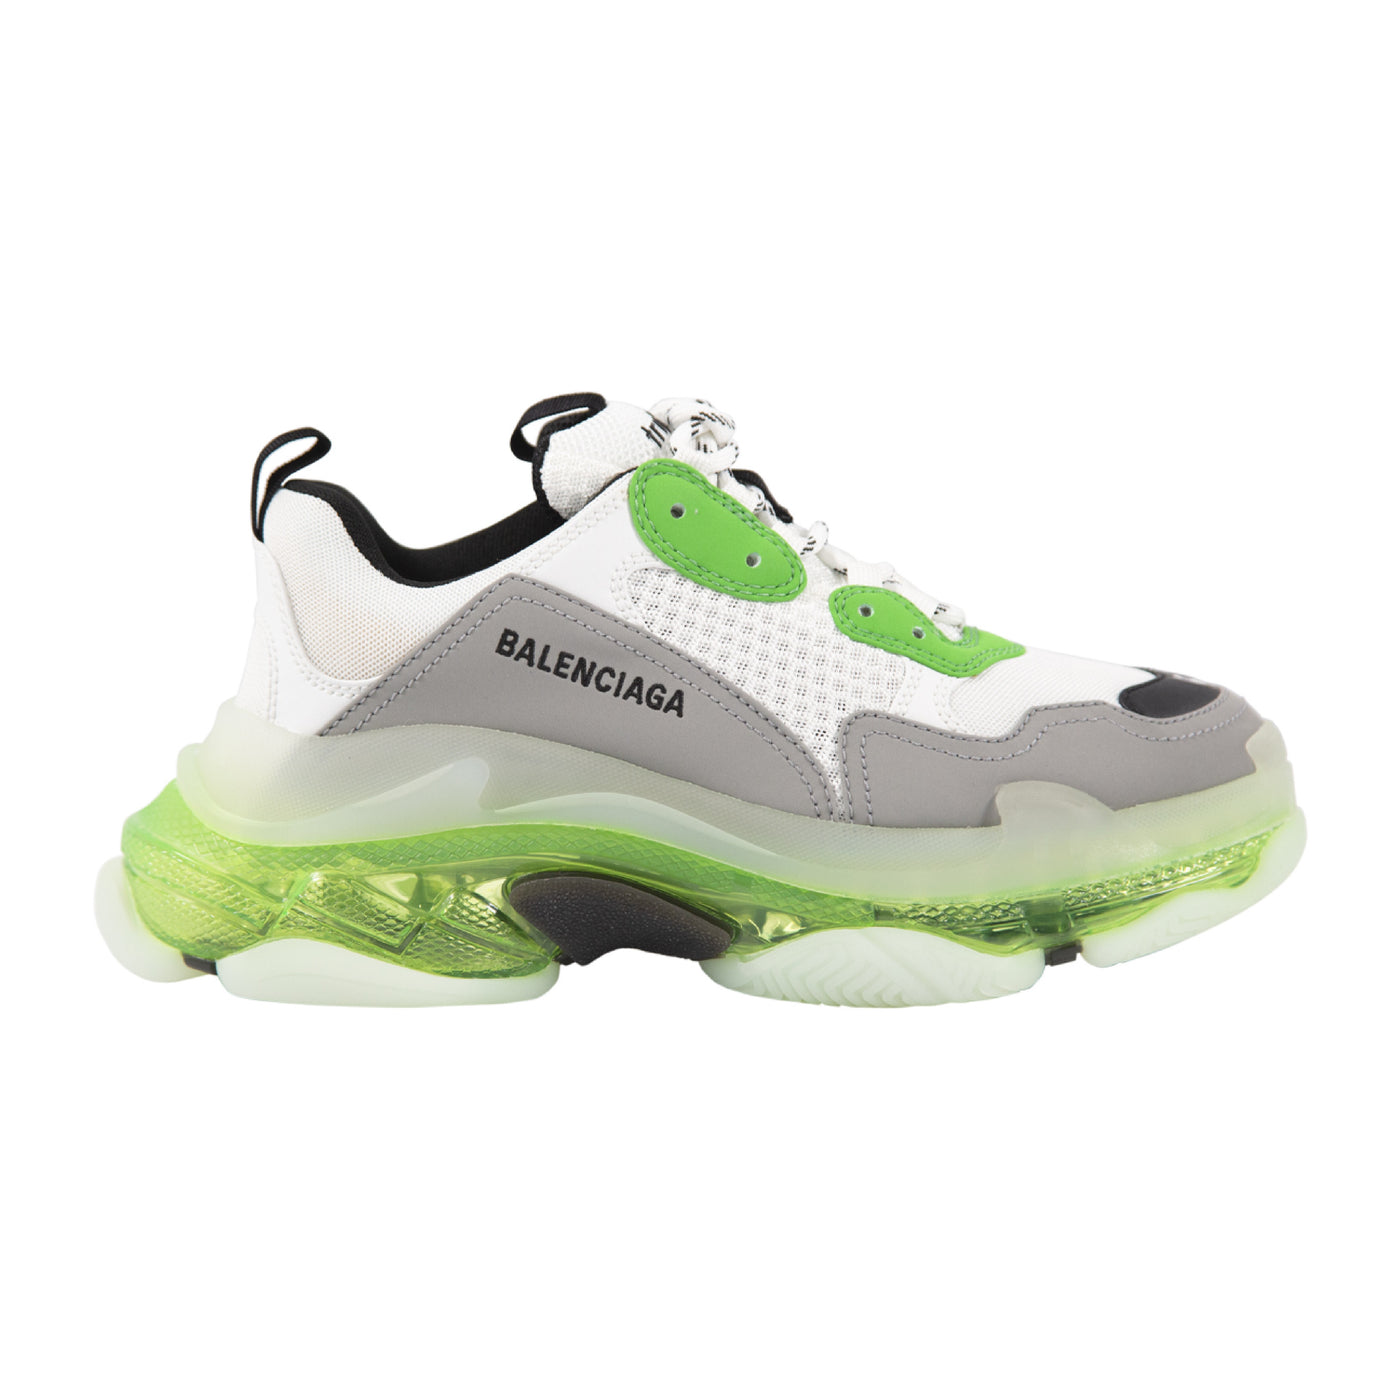 Load image into Gallery viewer, BALENCIAGA CLEAR-SOLE SNEAKERS GREEN